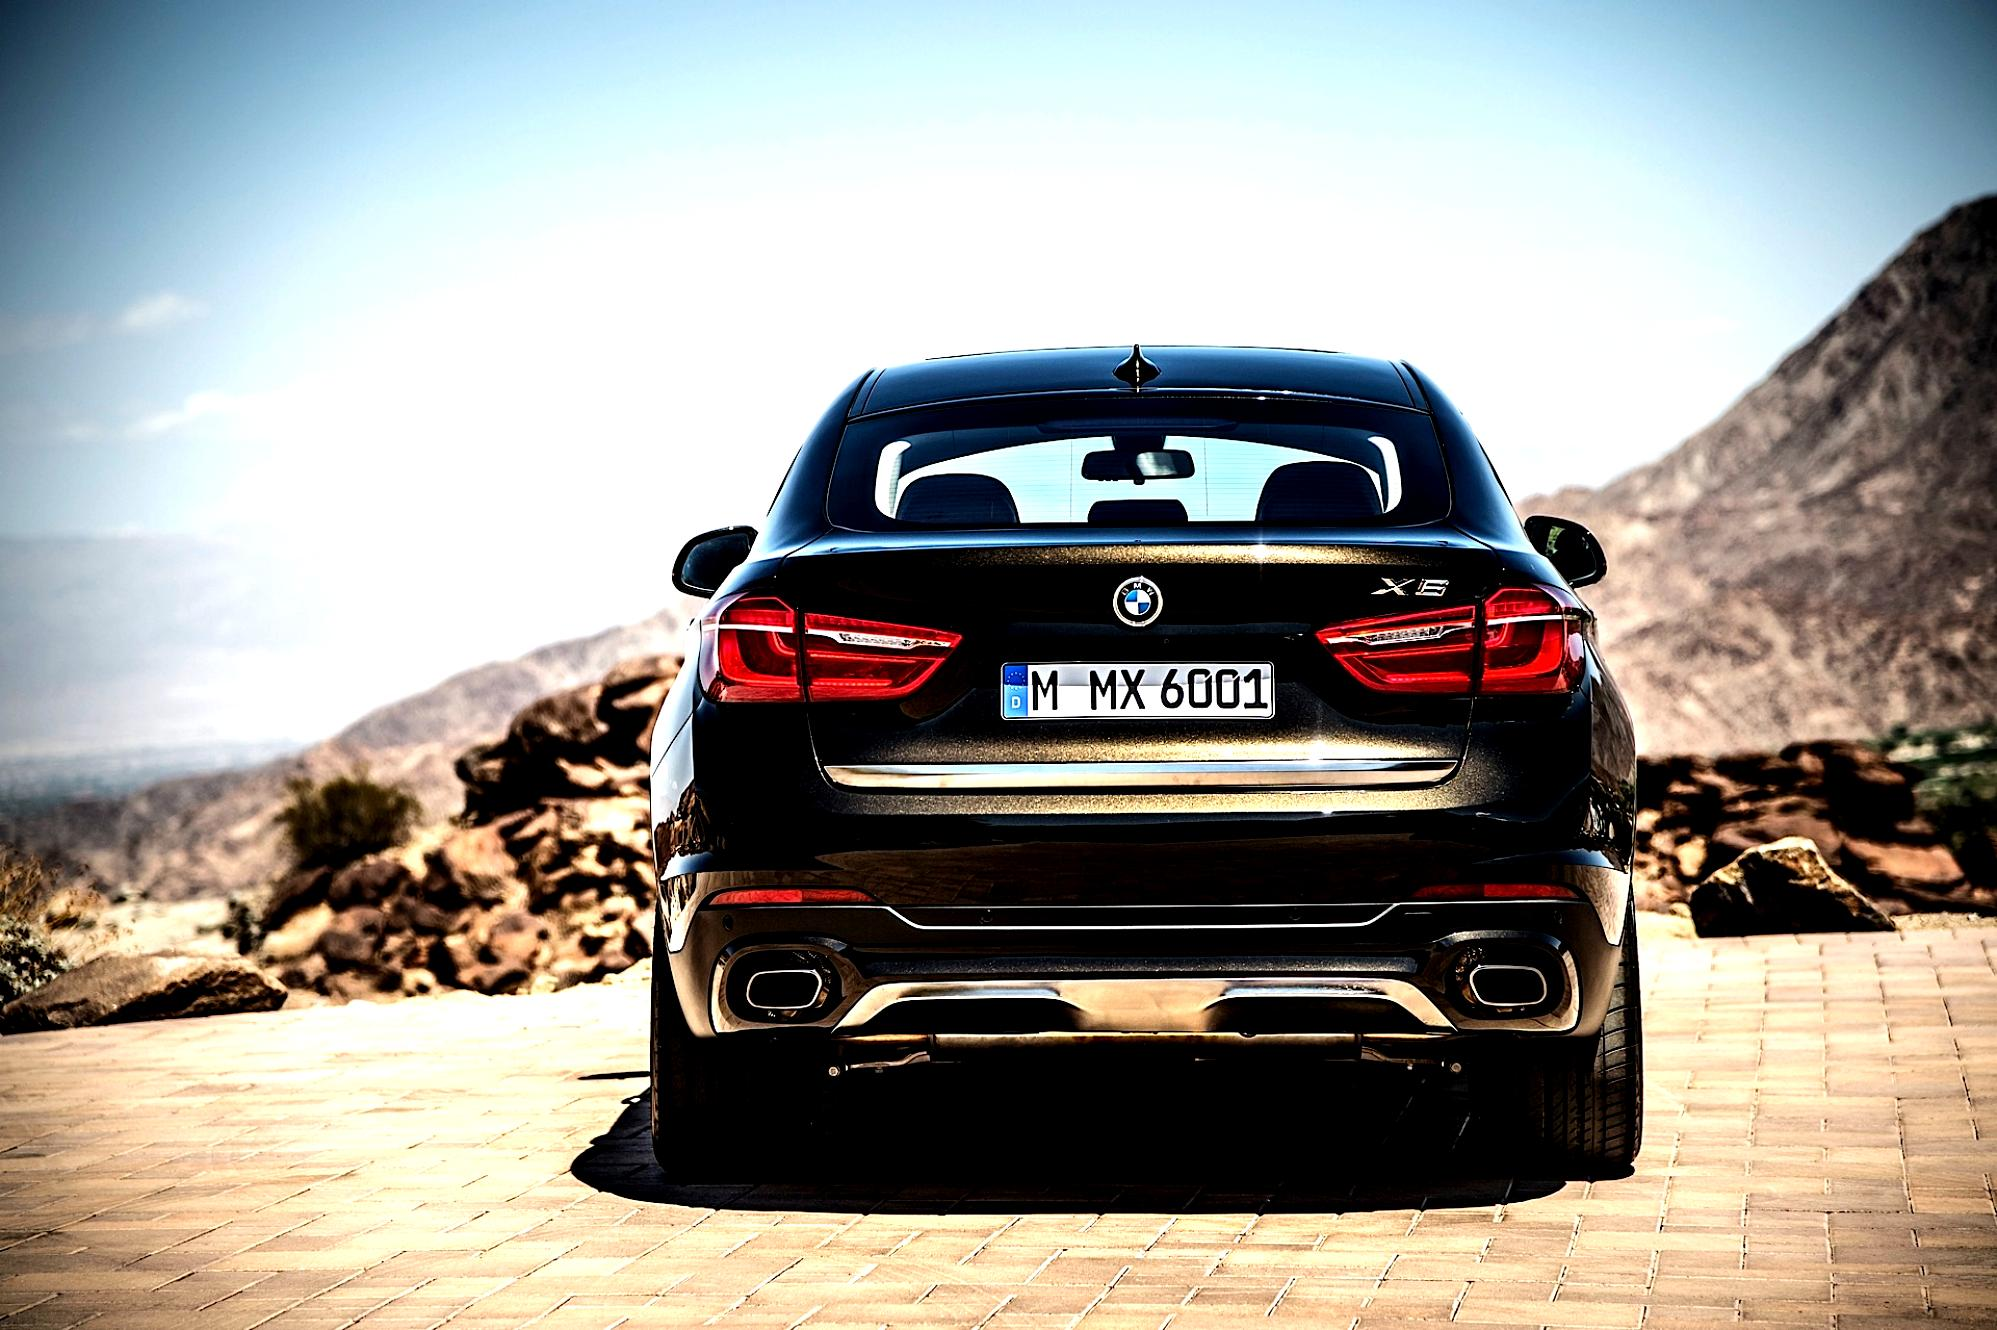 Bmw X6 F16 2014 On Motoimg Com